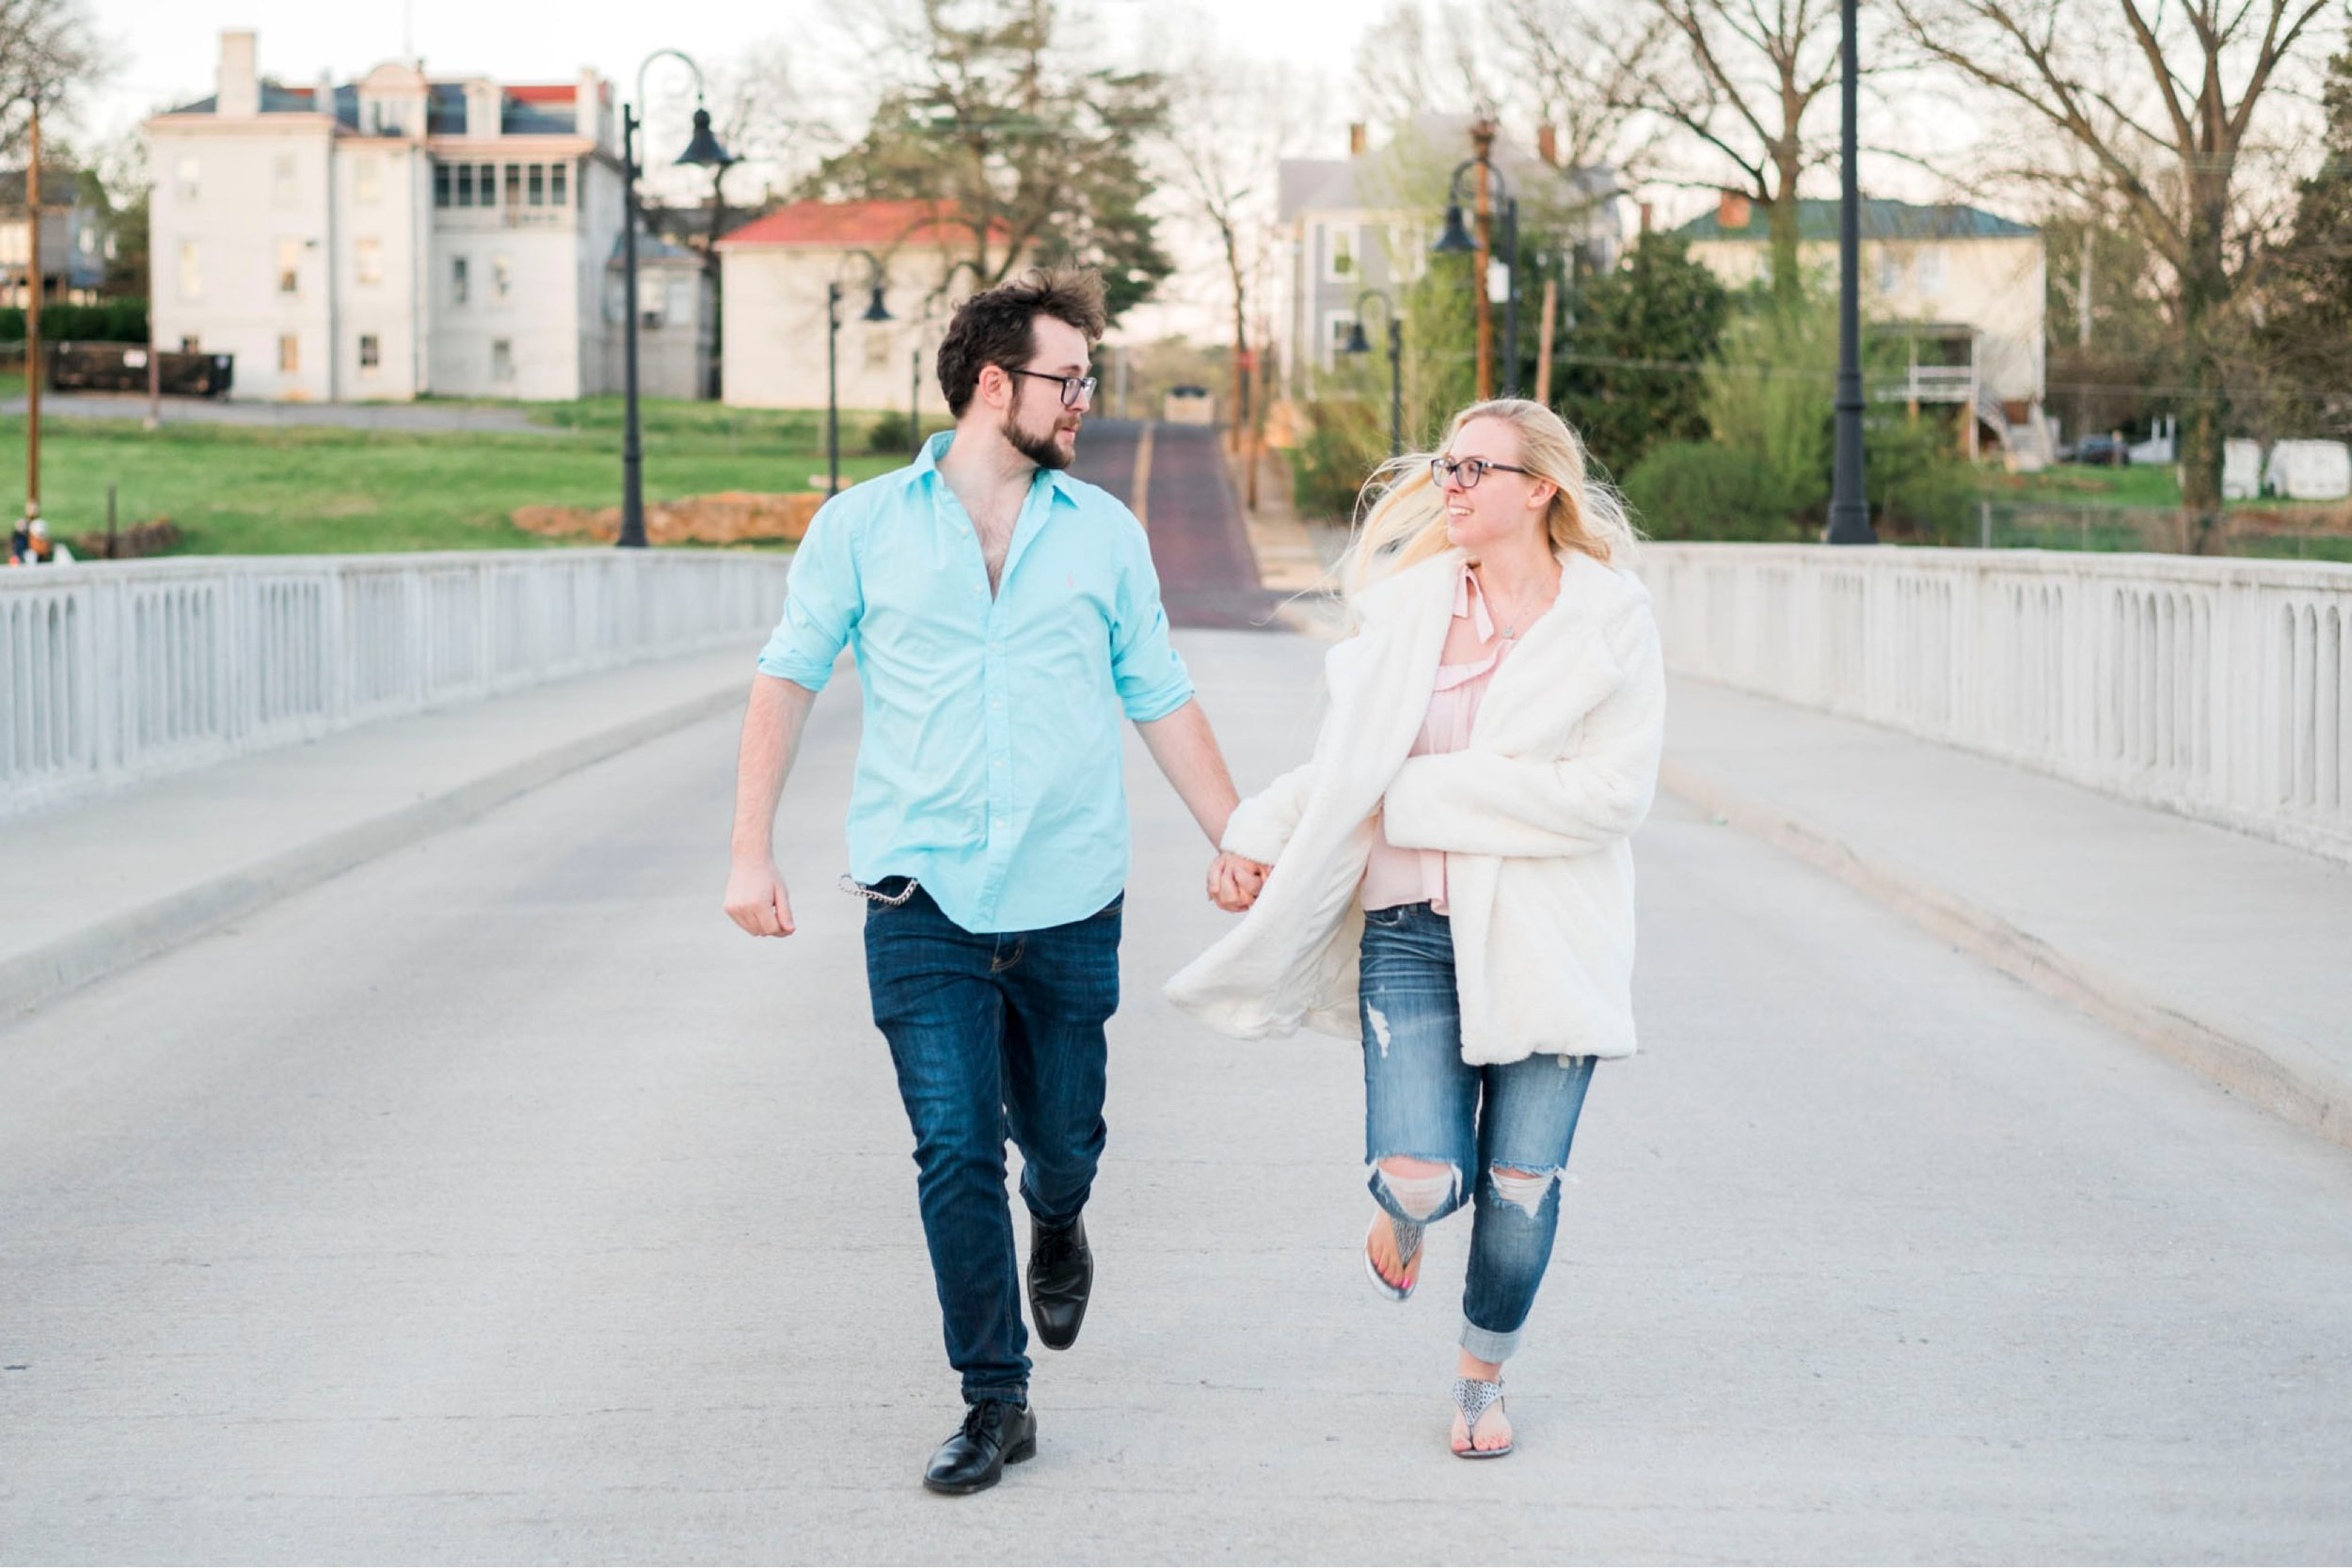 LaunceTarah_VirginiaWeddingPhotographer_EngagementSession_LynchburgVA_DowntownLynchburg_SpringEngagement 26.jpg